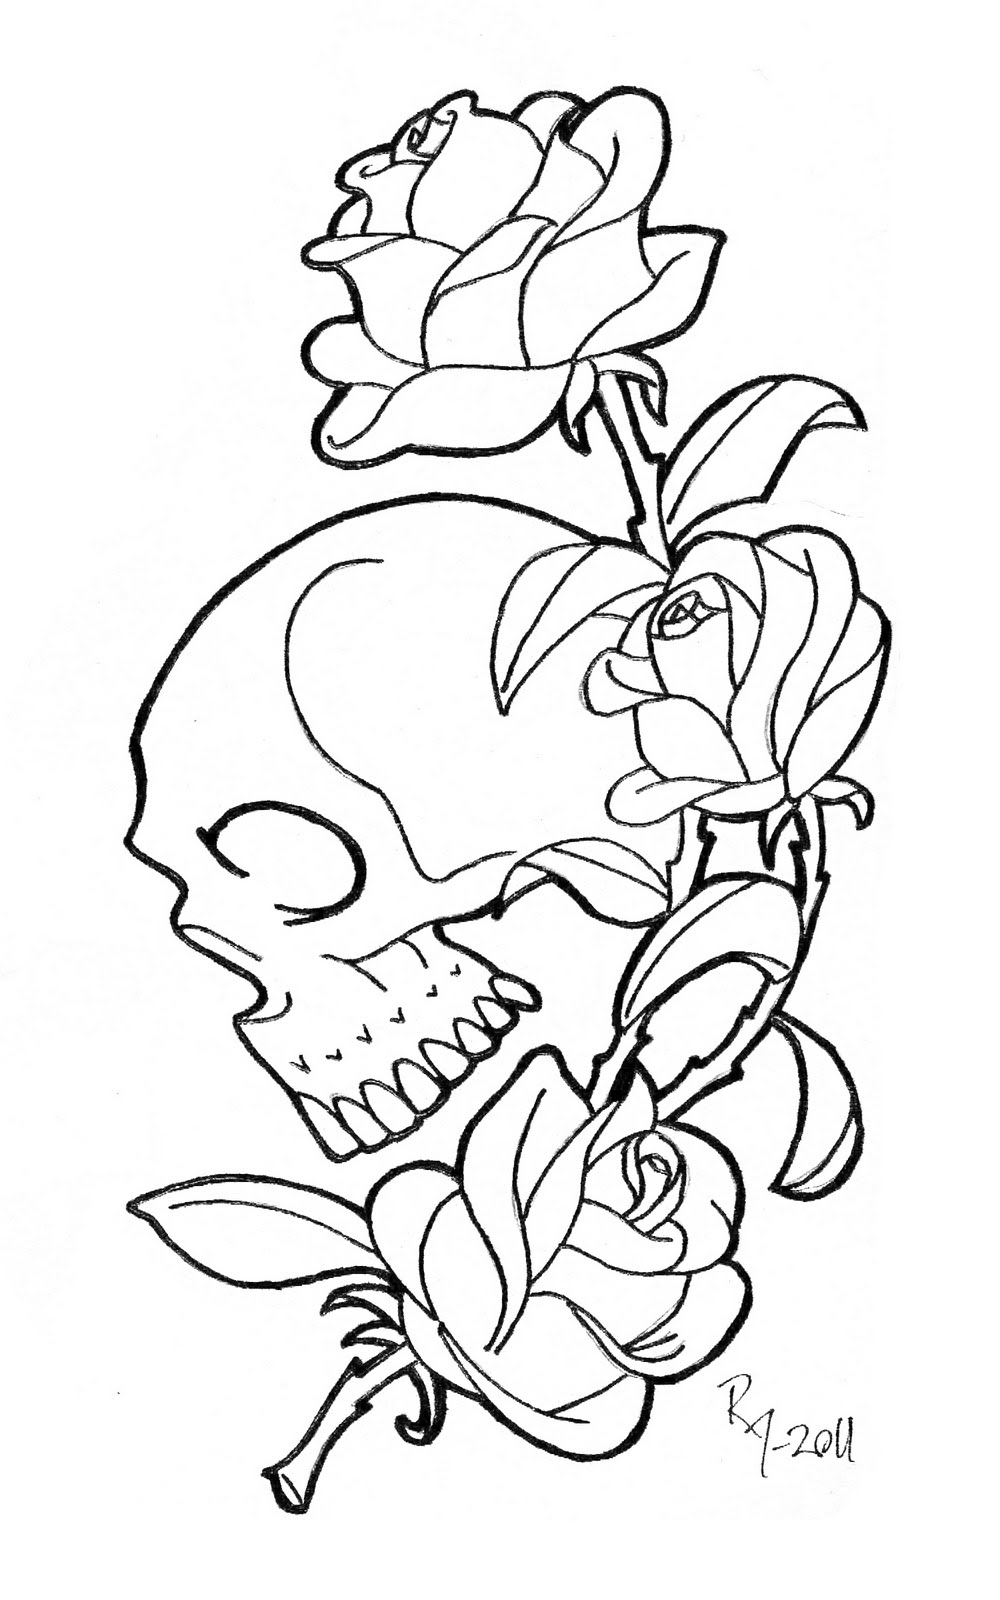 Top 10 ed hardy hearts coloring page free kids children for Coloring pages roses